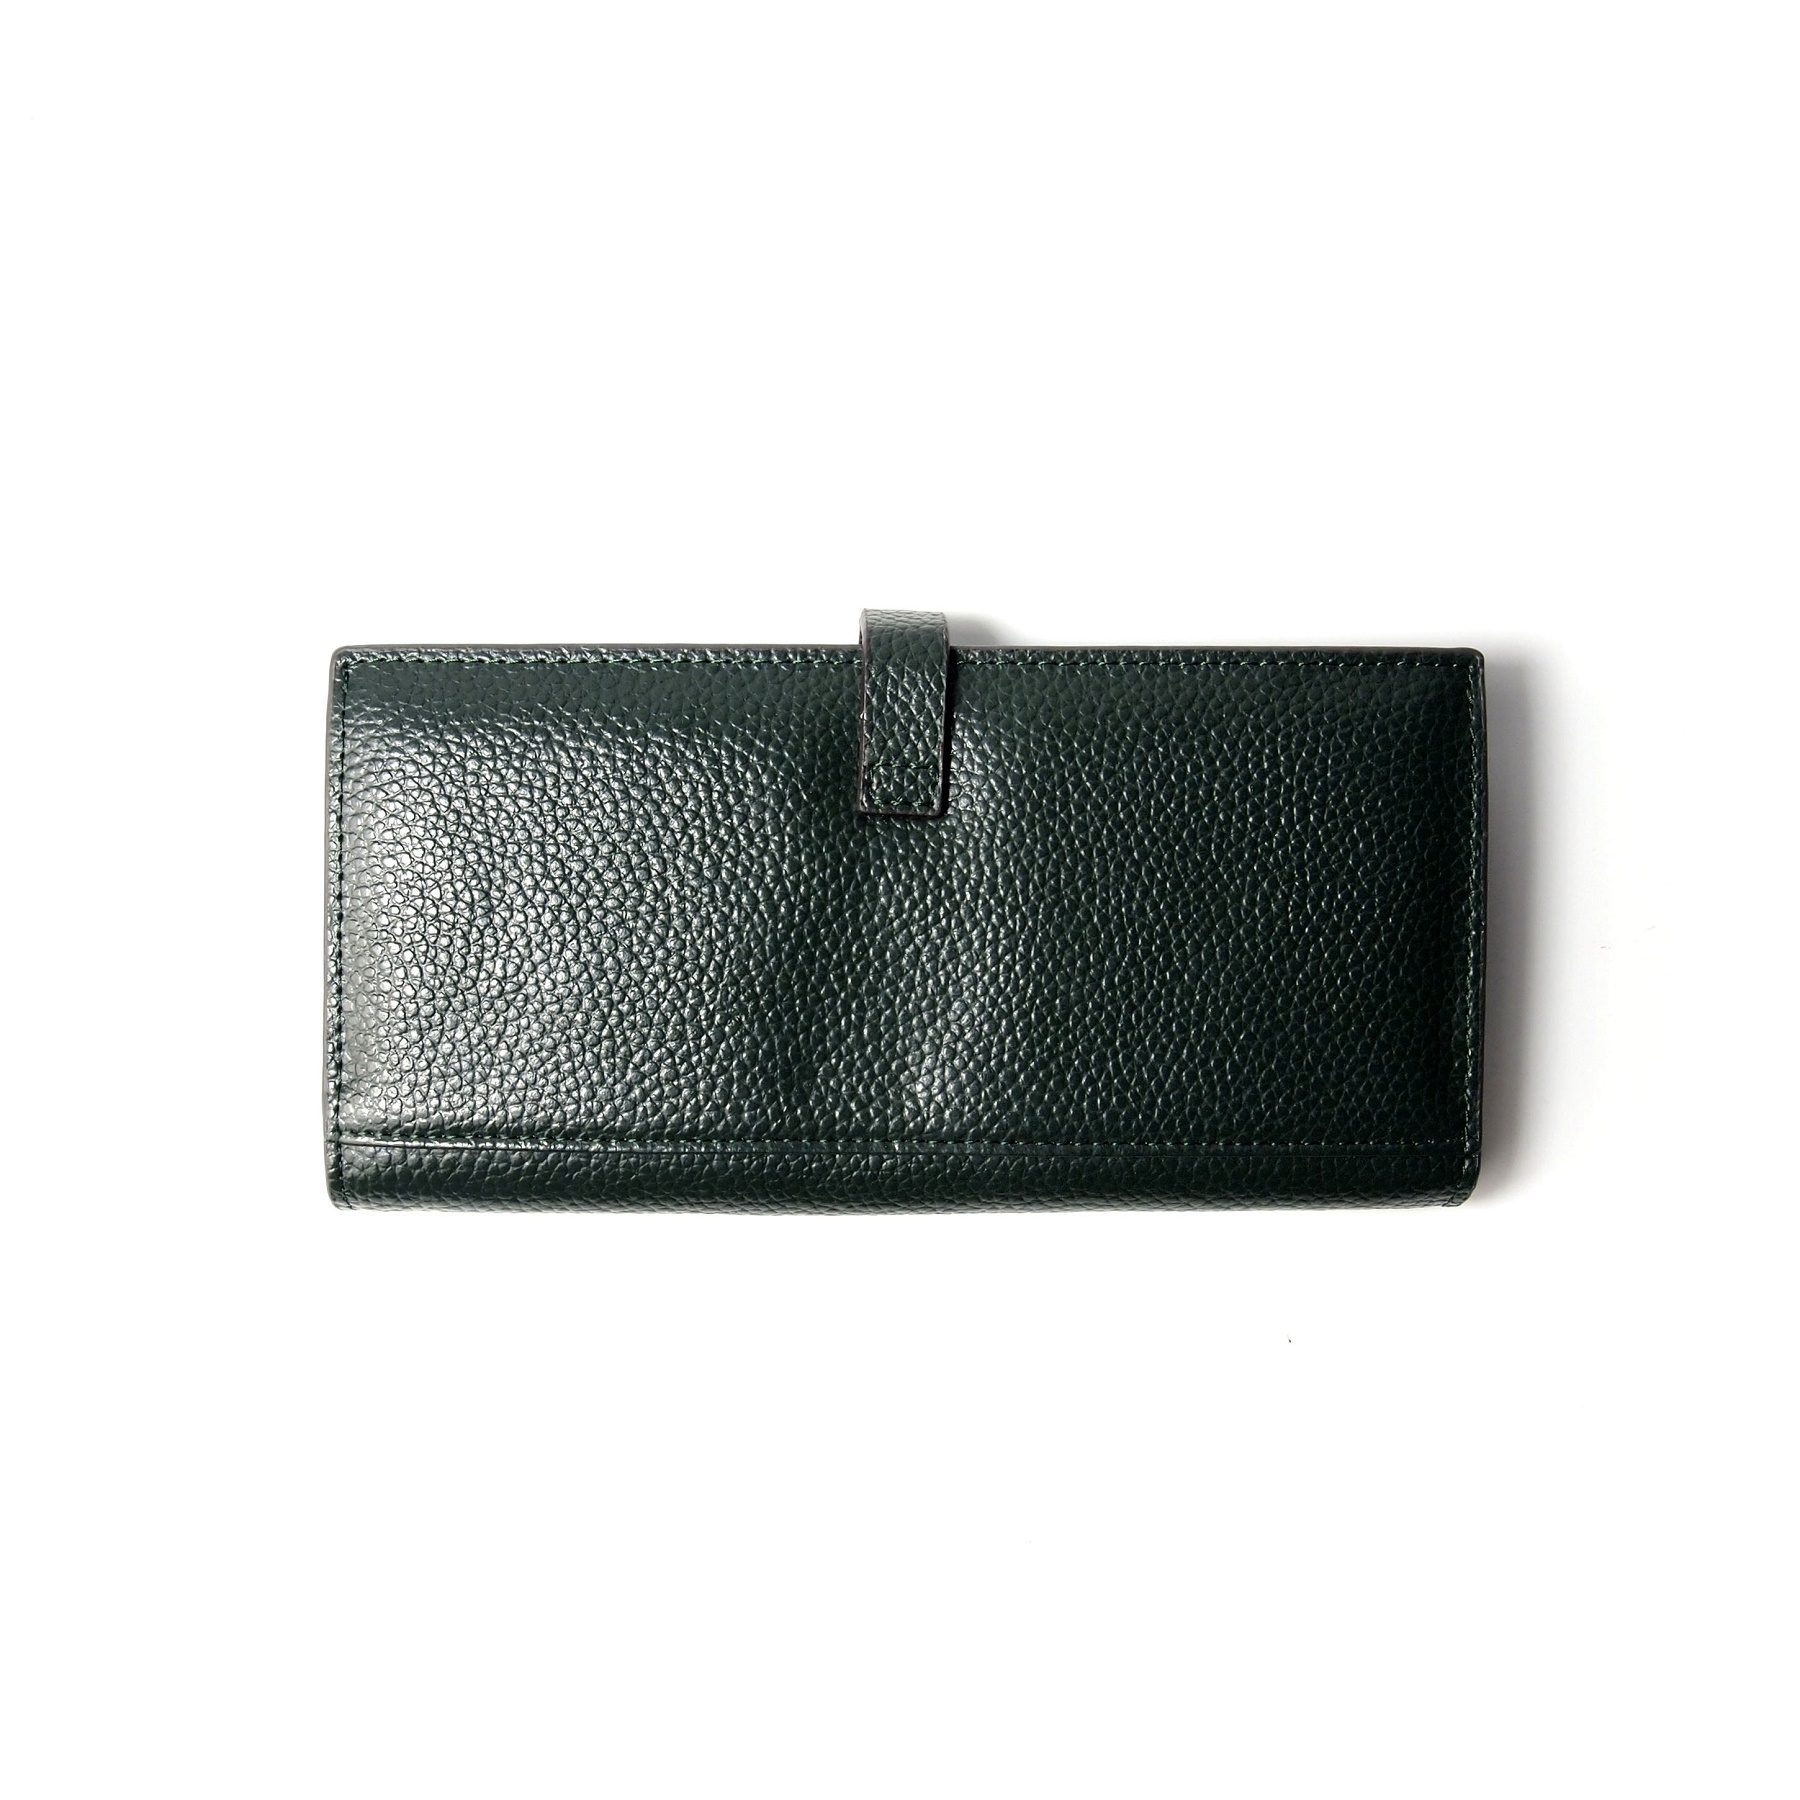 Butterfield Ellie Wallet Front View